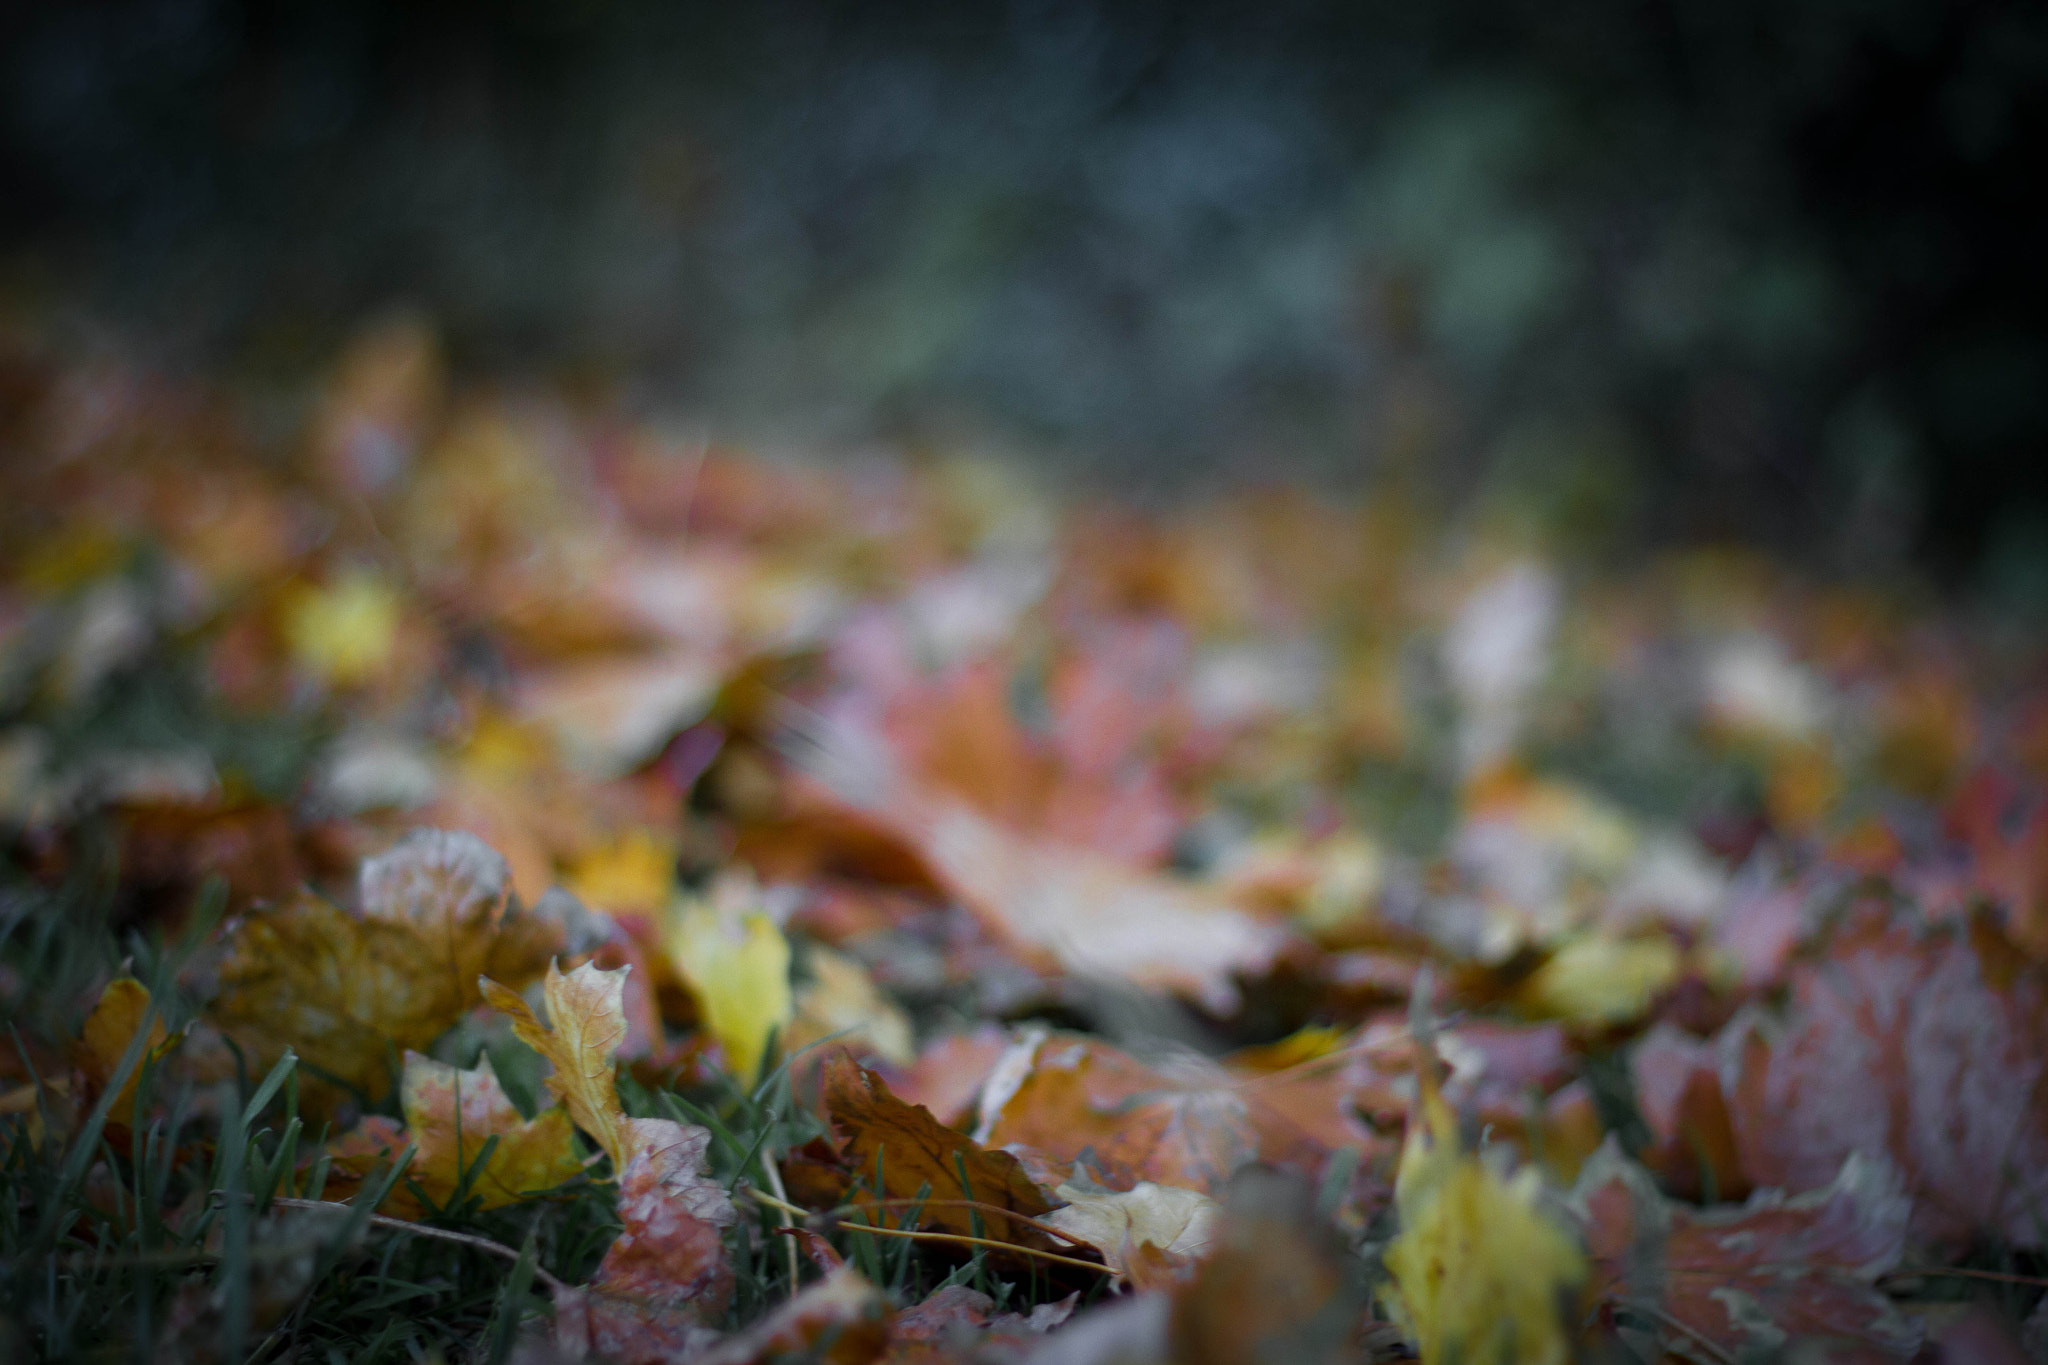 Photograph Autumn. by Jamie Shardlow on 500px